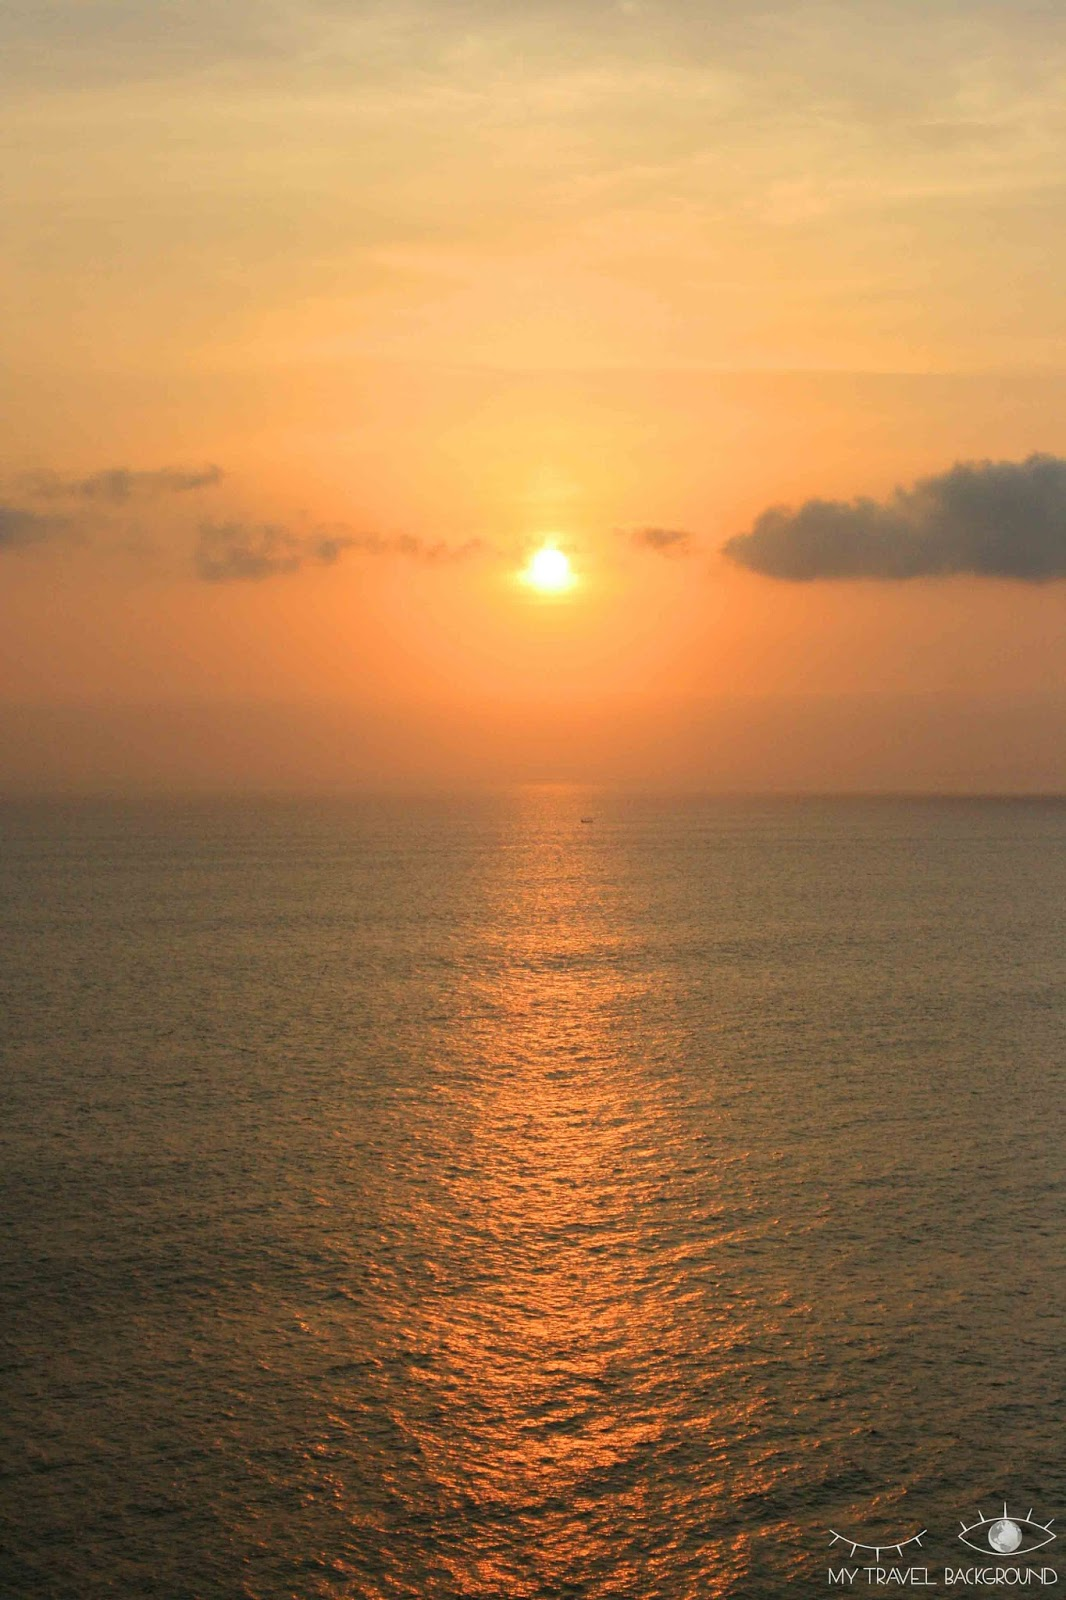 My Travel Background : A la découverte de Kuta et du Sud de Bali - Coucher de soleil à Uluwatu